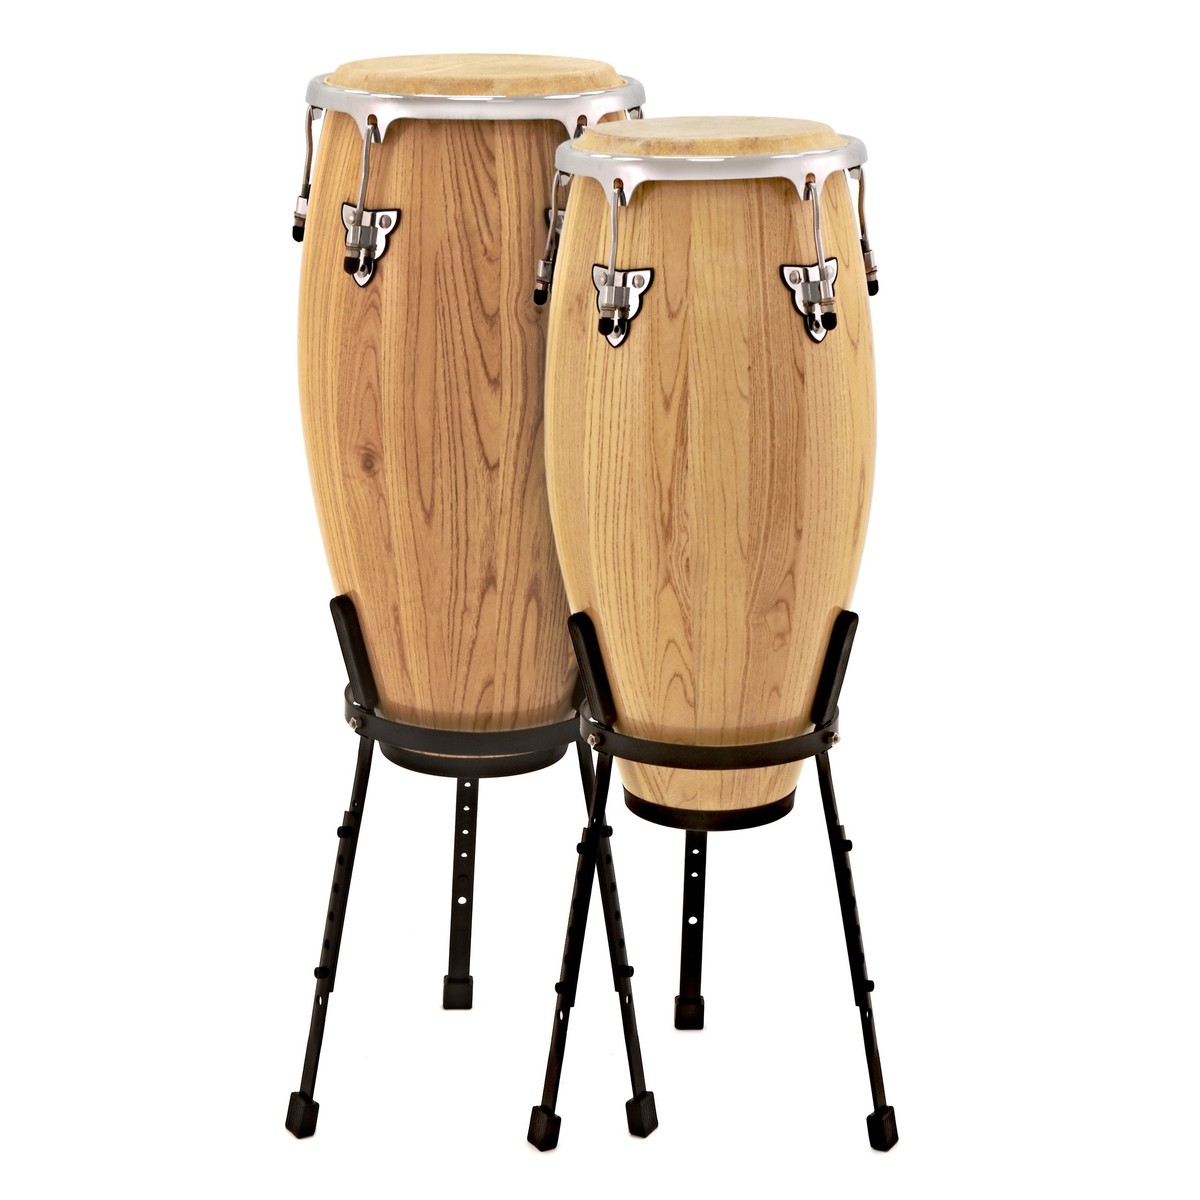 Conga Drums 10 Quot 11 Quot Set With Stands By Gear4music At